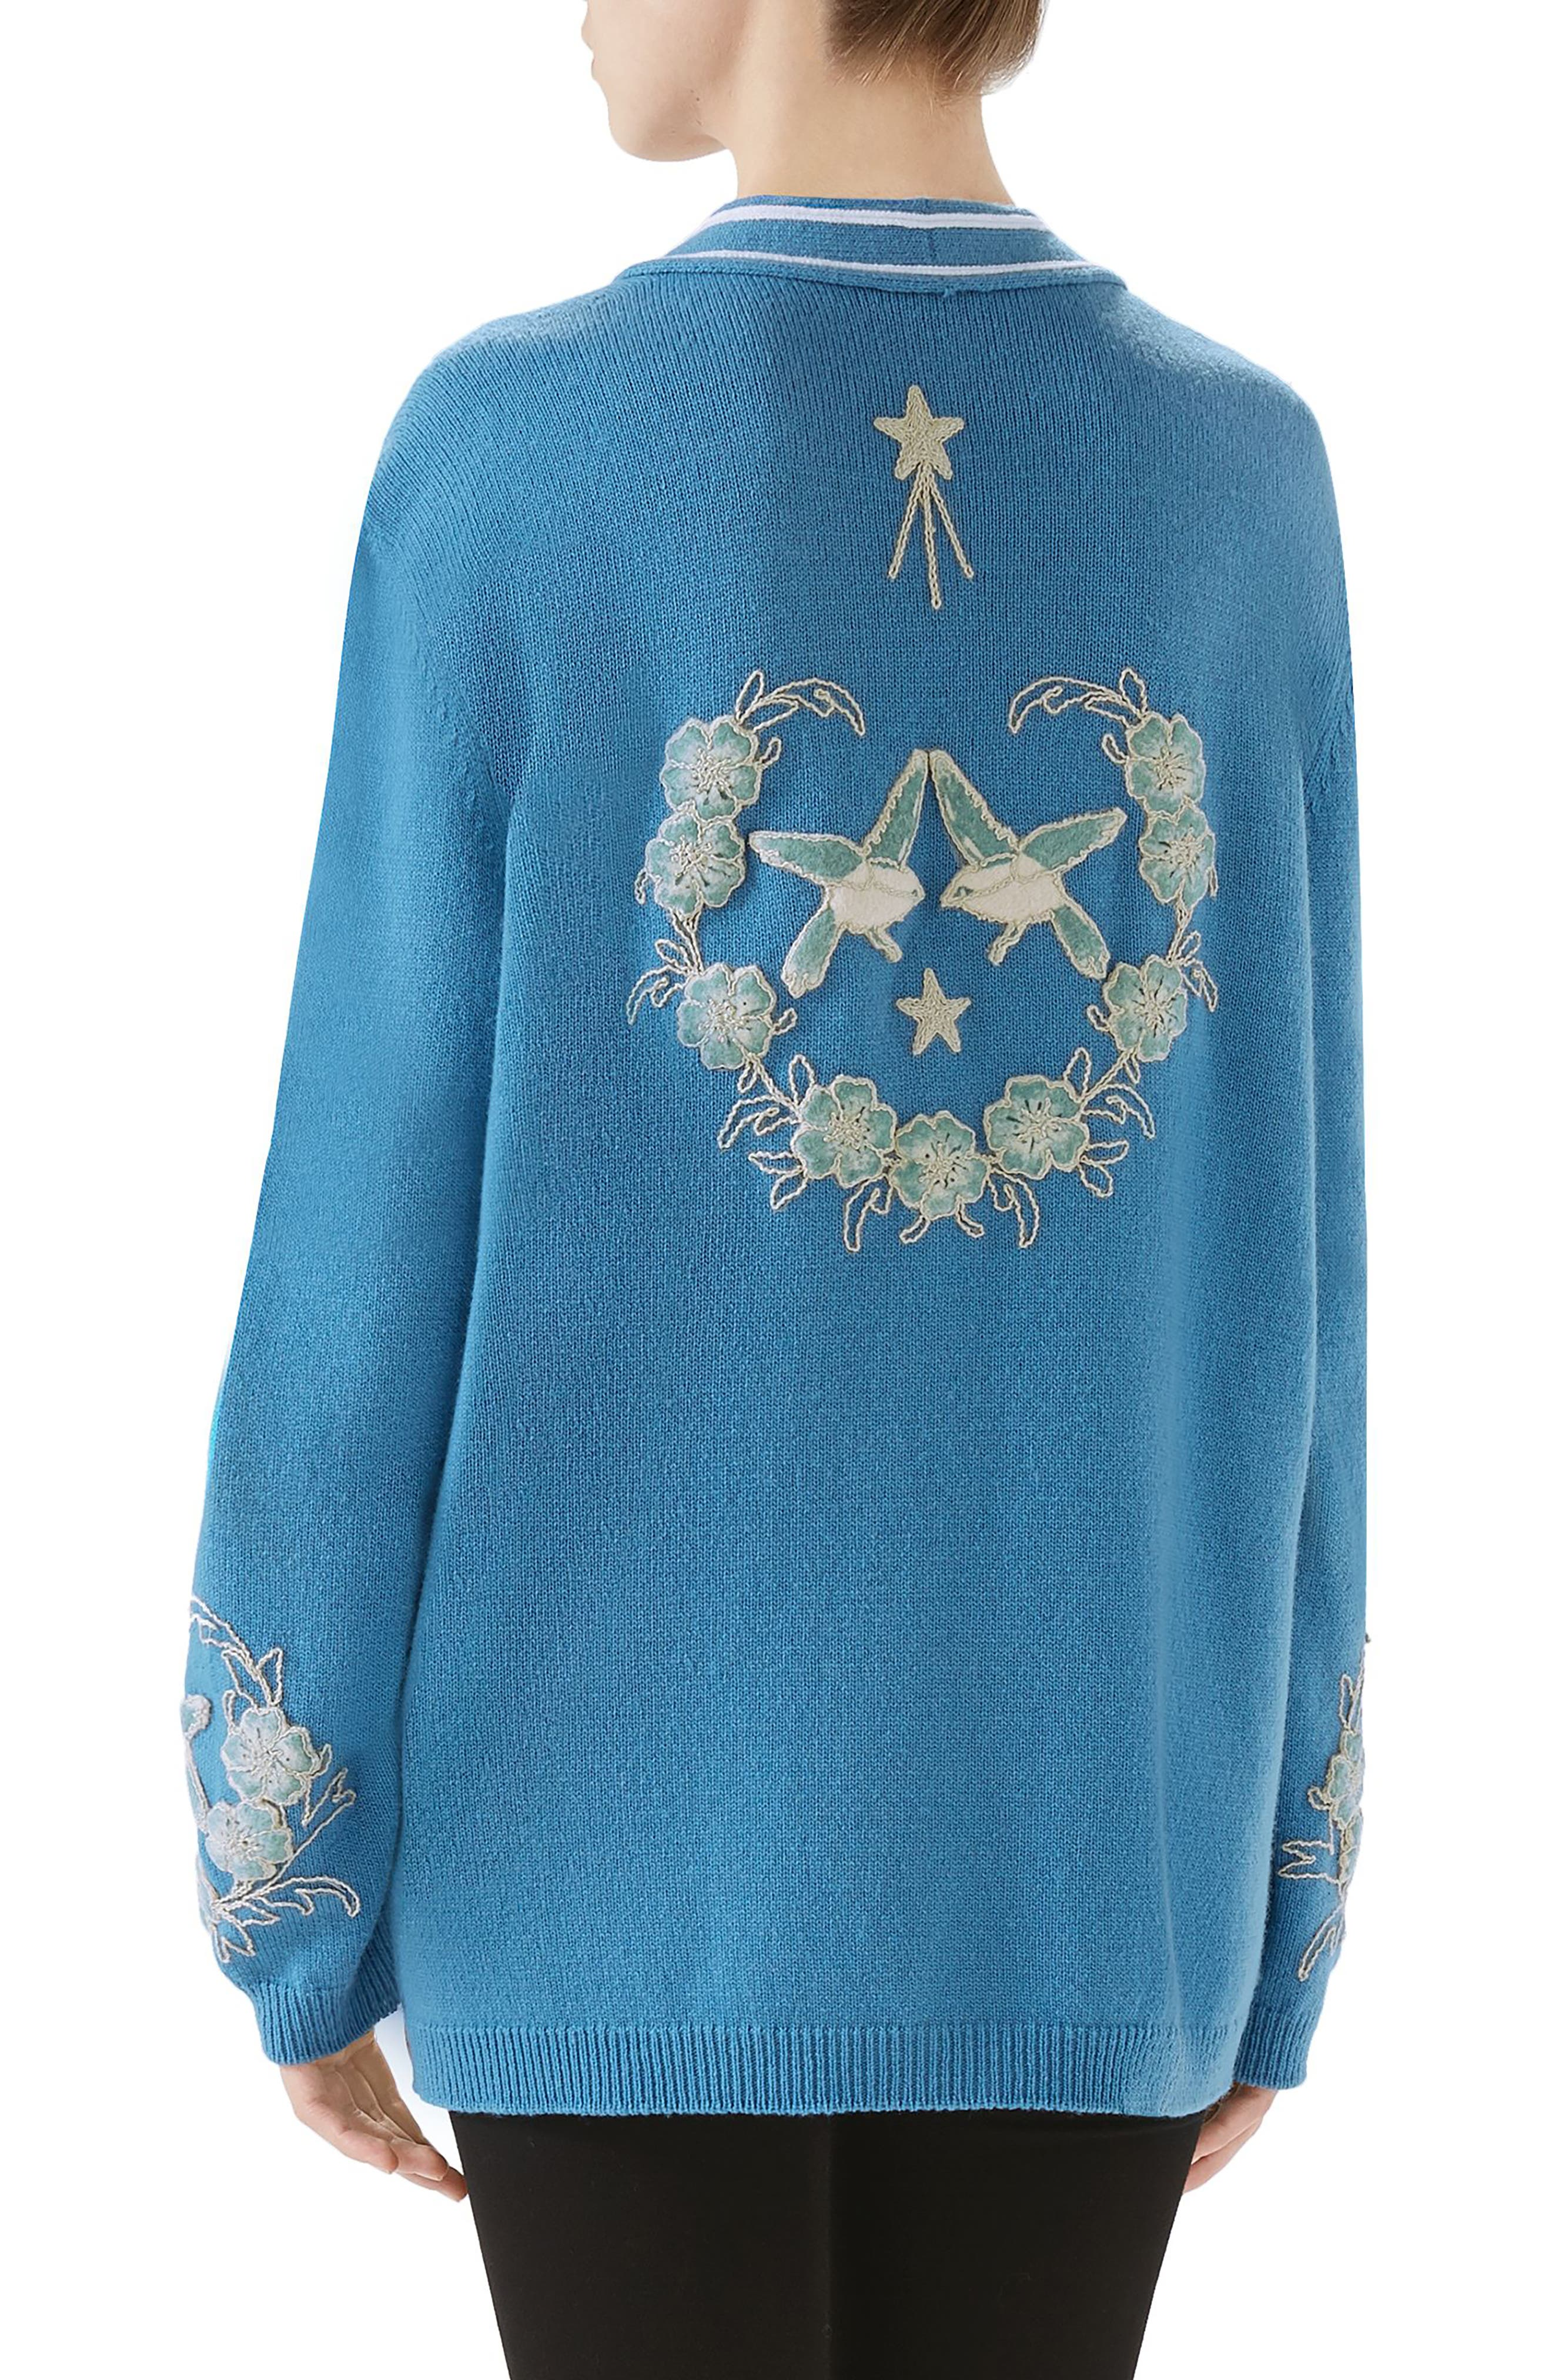 NY Embroidered Wool Cardigan,                             Alternate thumbnail 2, color,                             BLUE